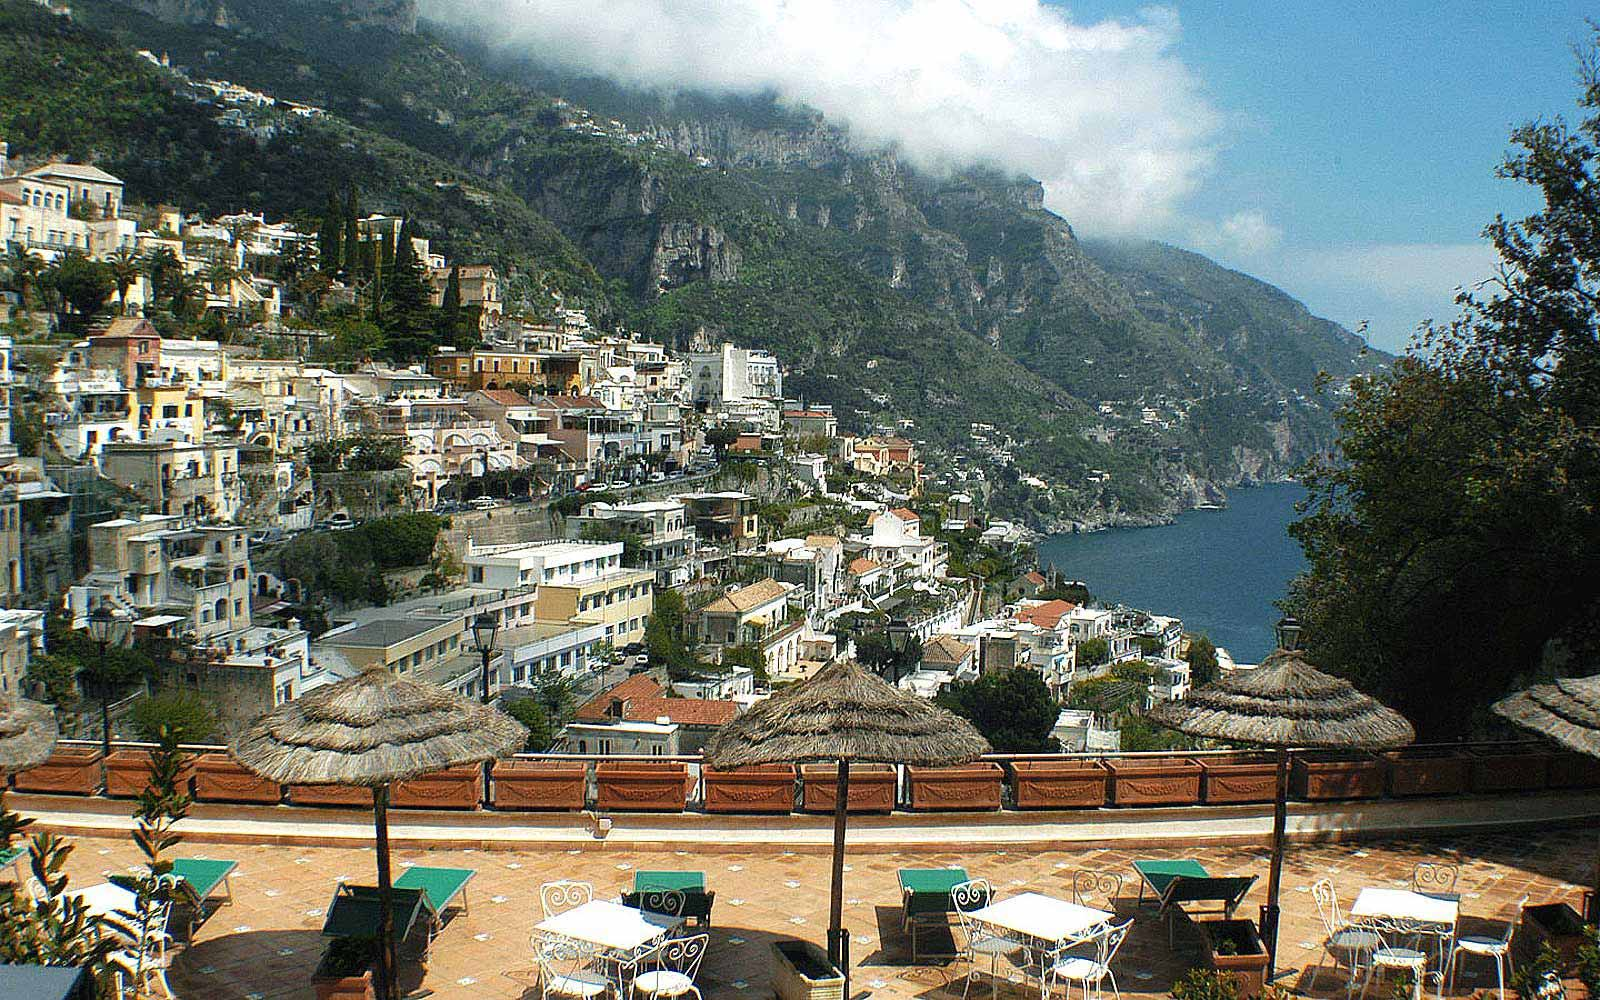 Views over Positano from the terrace at Posa Posa